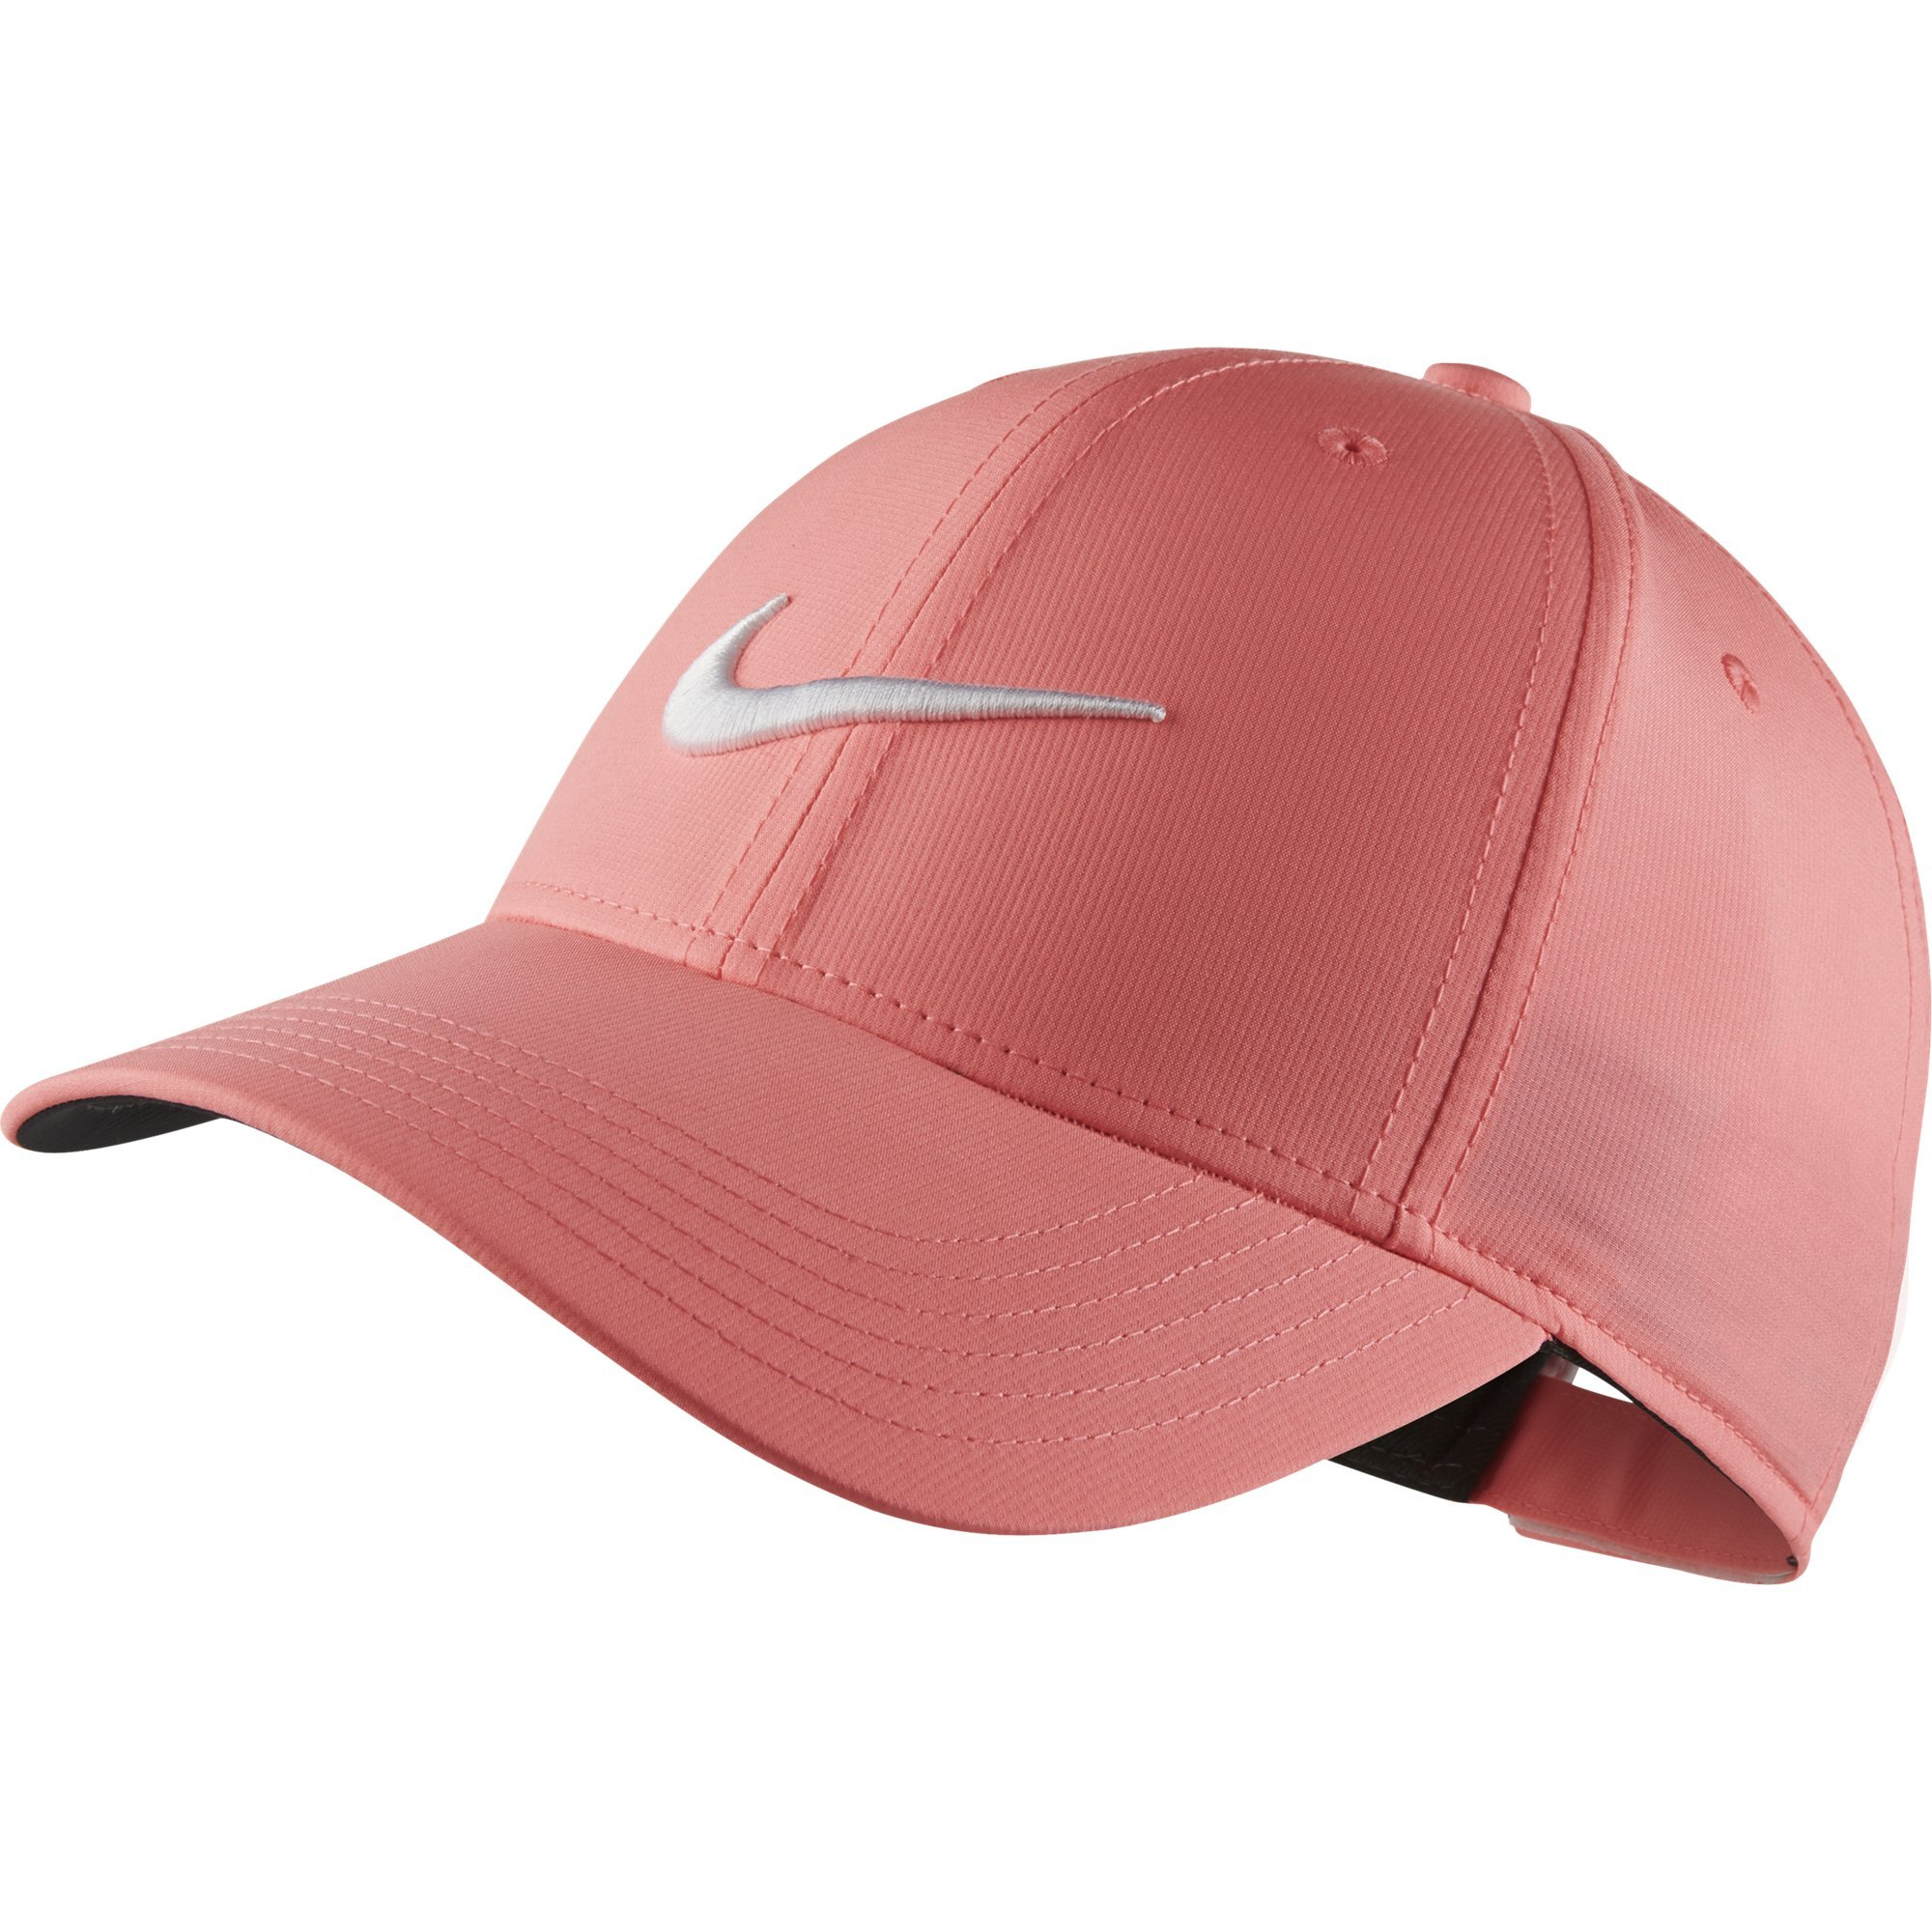 ea3bfd3409c Best Rated in Women s Golf Caps   Helpful Customer Reviews - Amazon.com